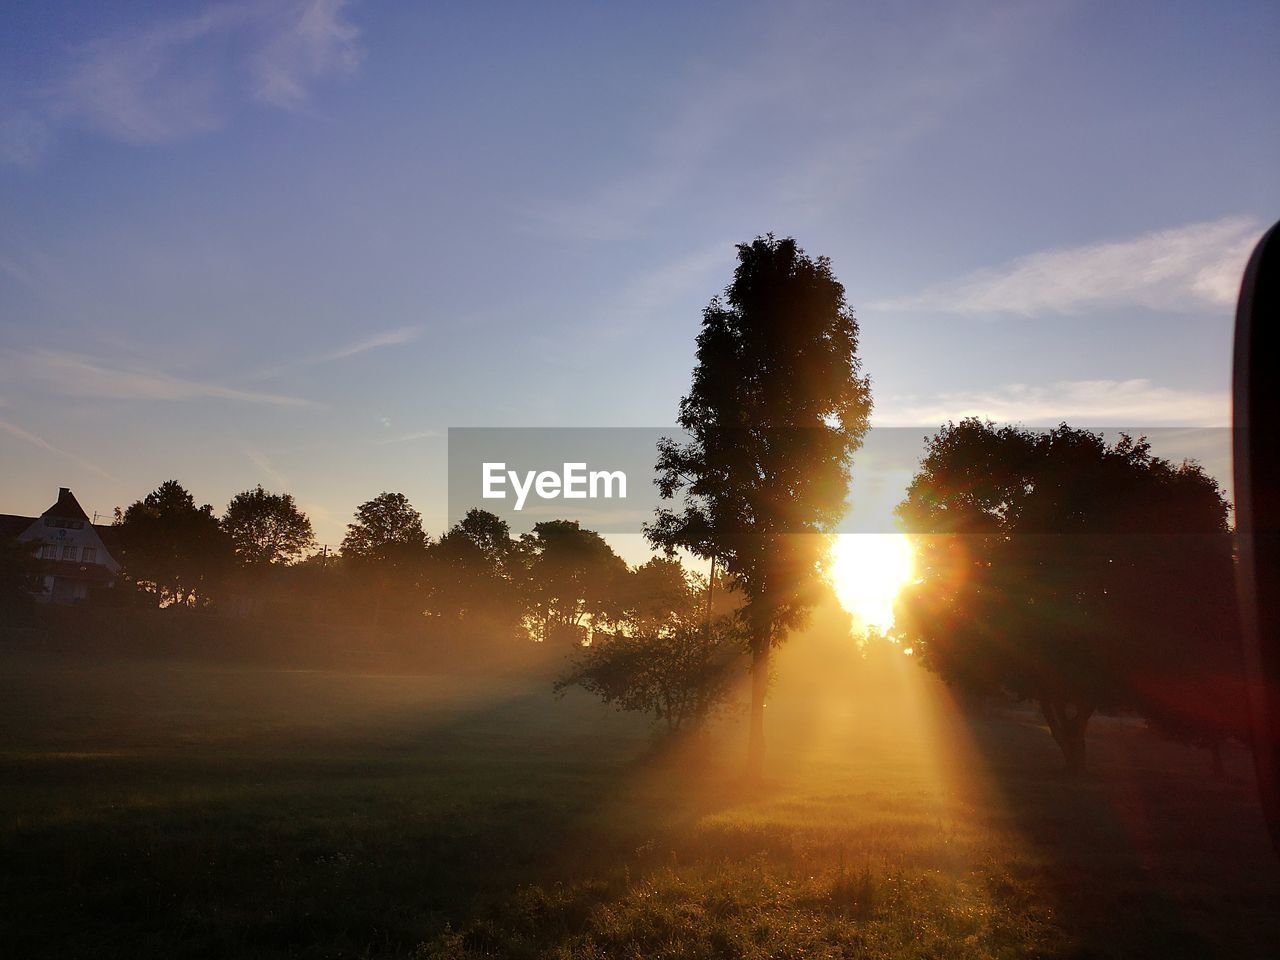 sky, tree, plant, sunset, beauty in nature, tranquility, sunlight, tranquil scene, scenics - nature, nature, sunbeam, cloud - sky, sun, field, silhouette, lens flare, non-urban scene, land, idyllic, growth, no people, outdoors, streaming